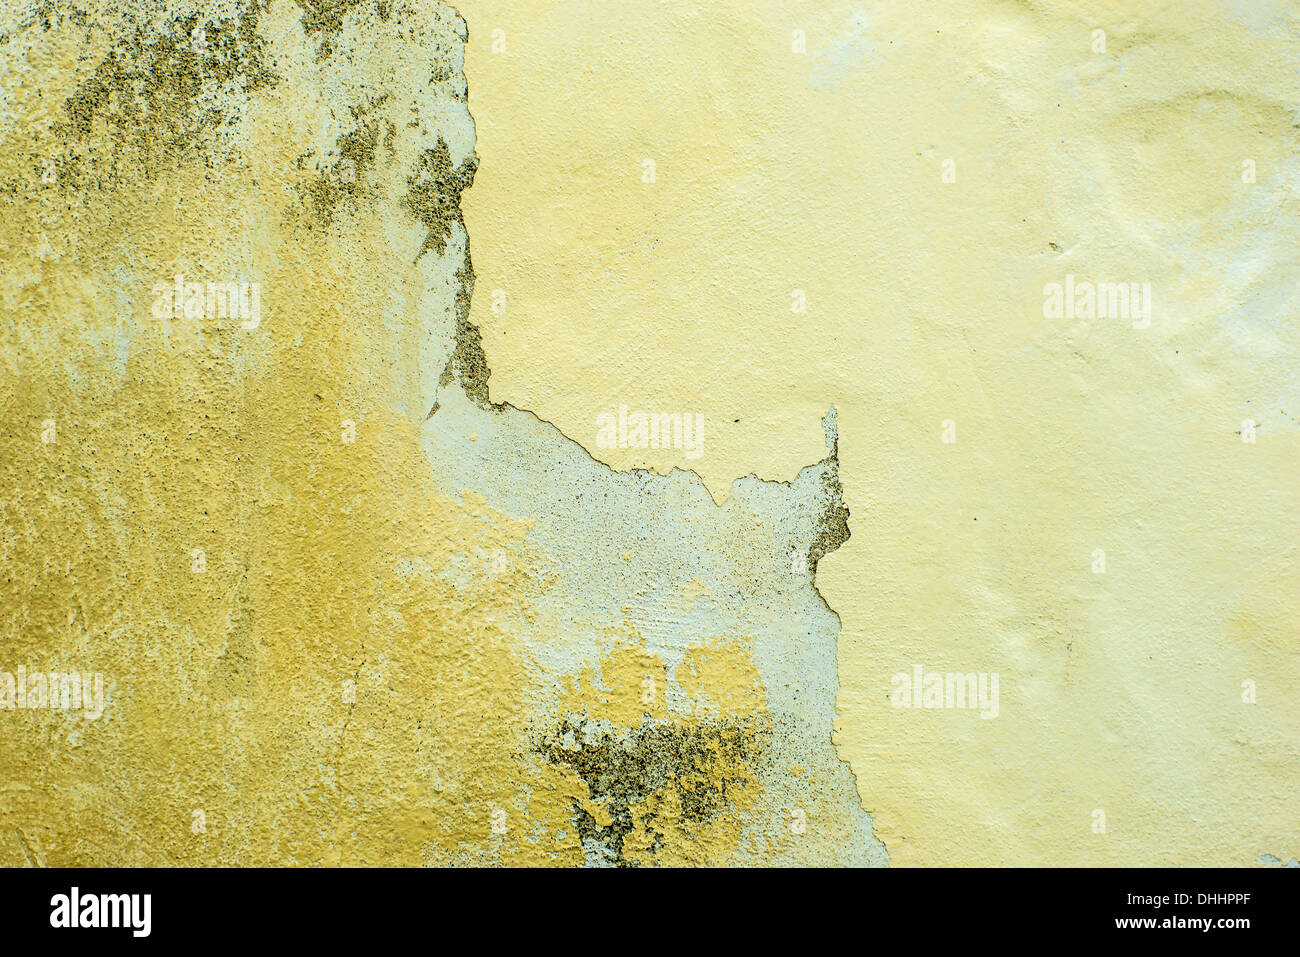 Wall of concrete with spoiled coating - Stock Image